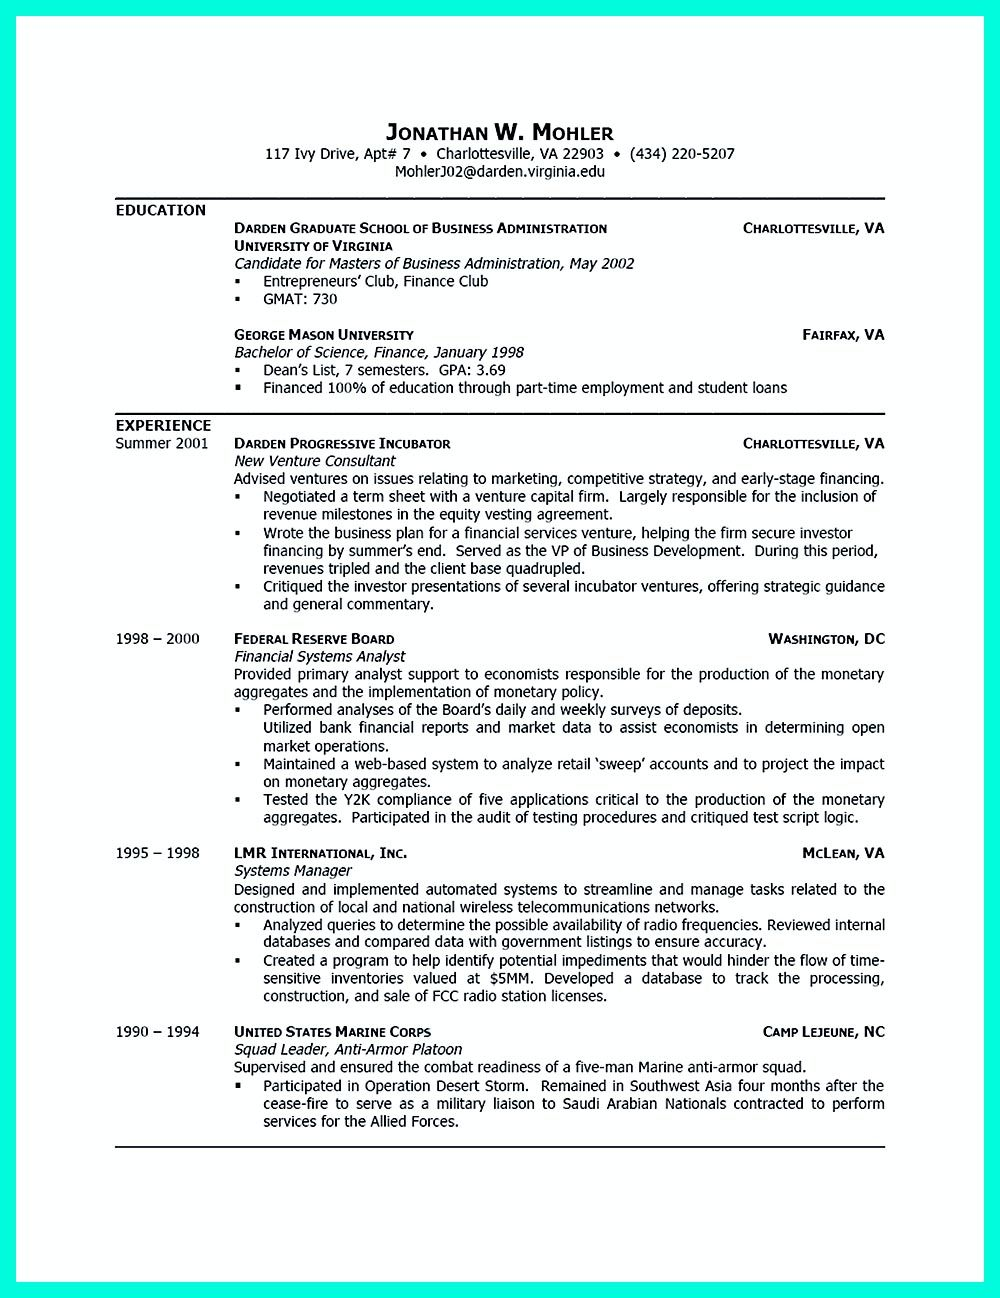 Resume Template For College Student College Resume Is Designed For College Students Either With Or